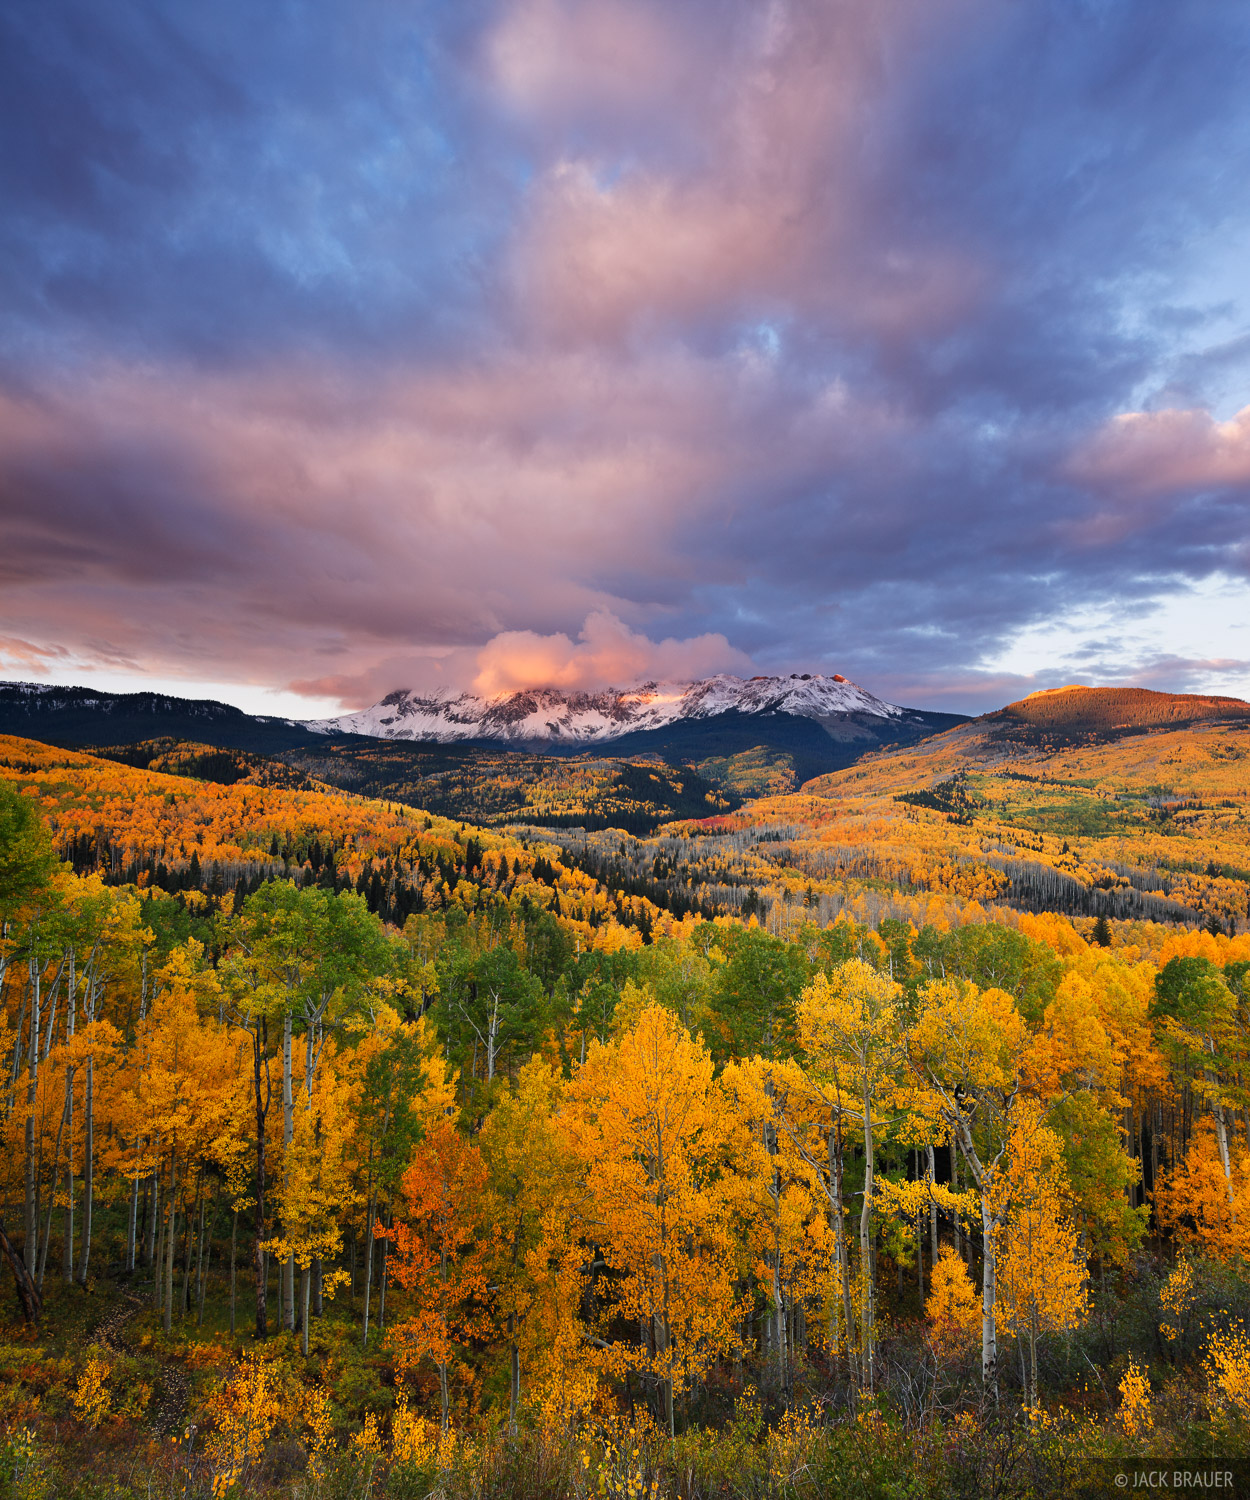 A stormy sunrise above Dolores Peak and the vast aspen groves of the Fall Creek valley near Telluride, Colorado - September.